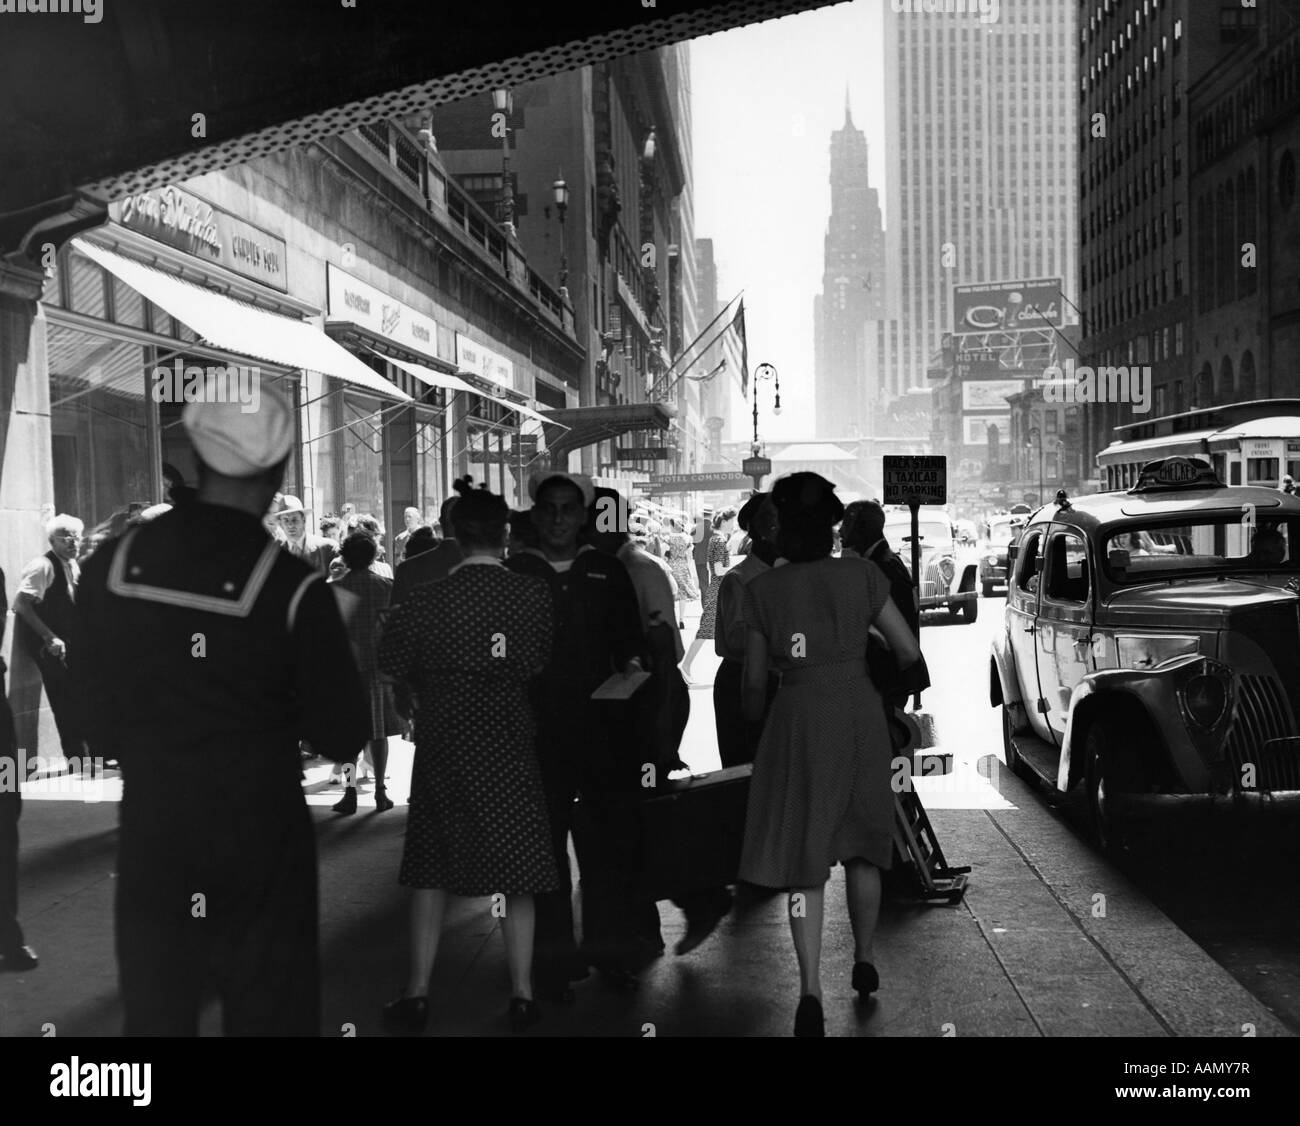 1940s GRAND CENTRAL STATION PEDESTRIAN SAILOR UNIFORM TAXI STORE MEN WOMEN 42ND STREET SIDEWALK NYC USA - Stock Image